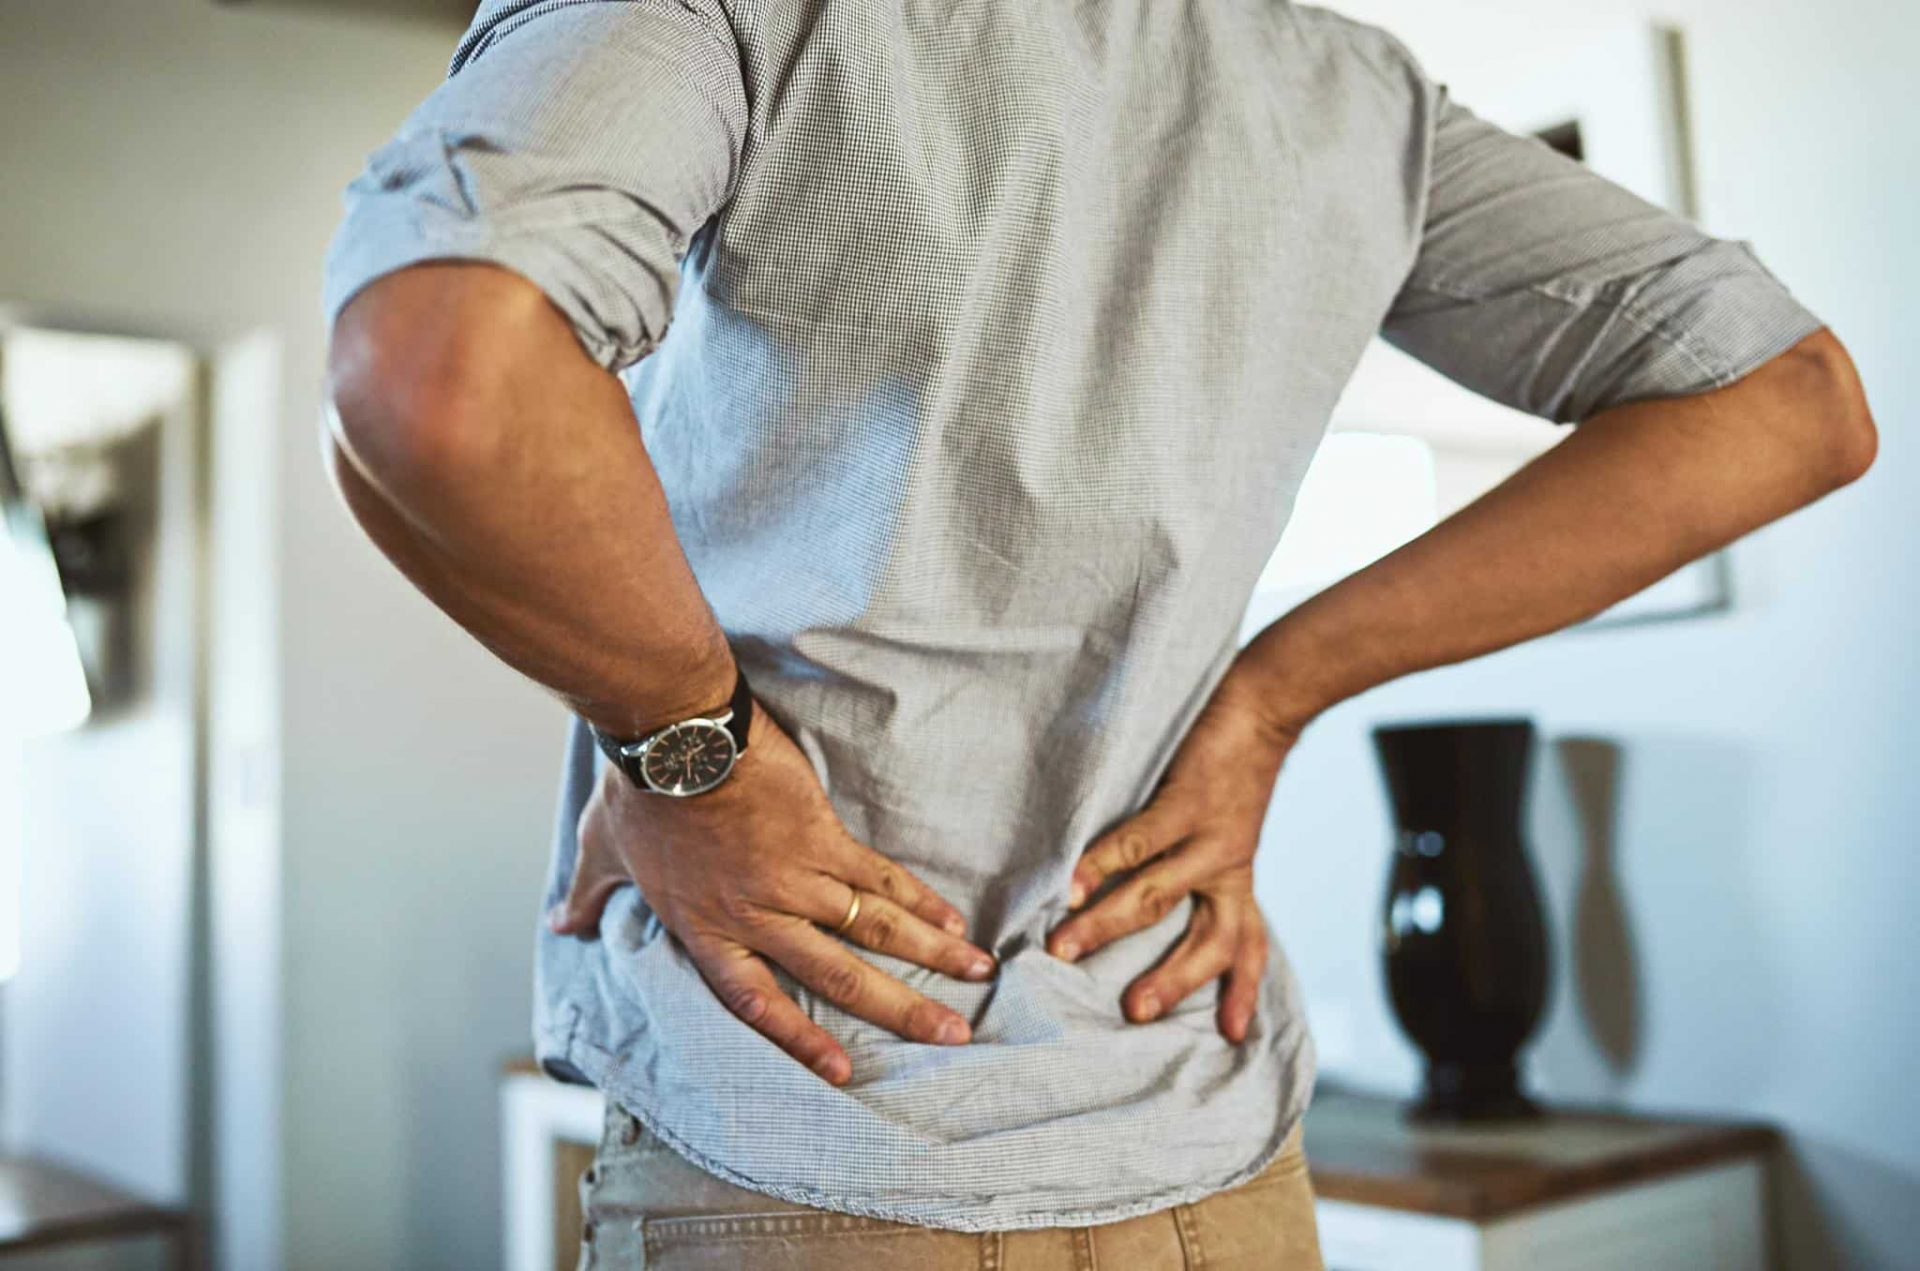 man with back pain who could take cbd oil to help